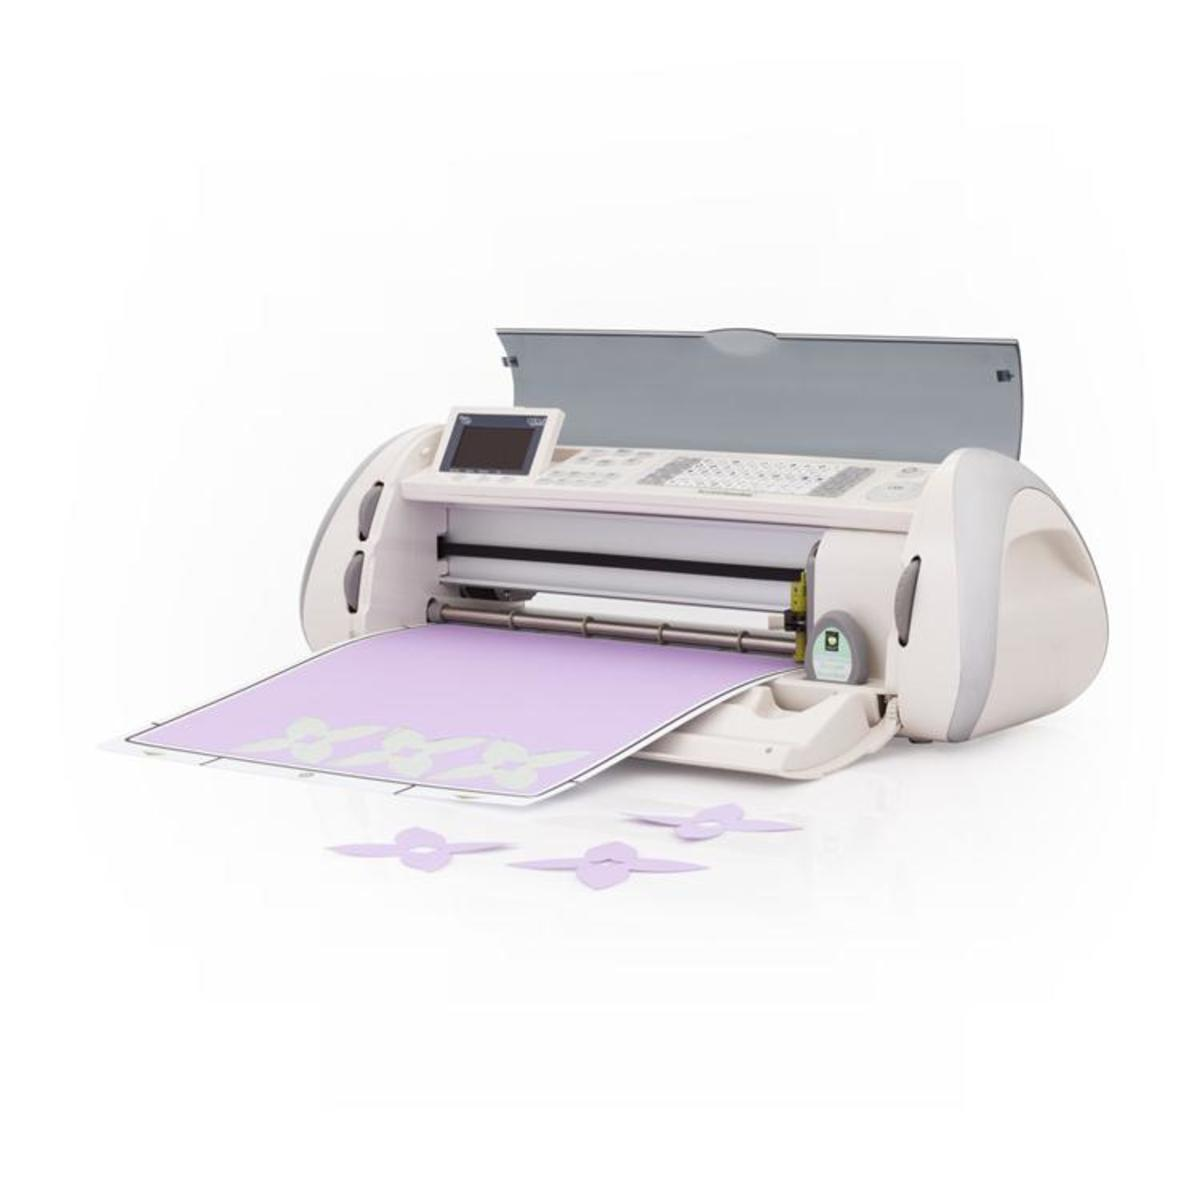 The Cricut Expression cutting machine is a versatile hobby and business tool.